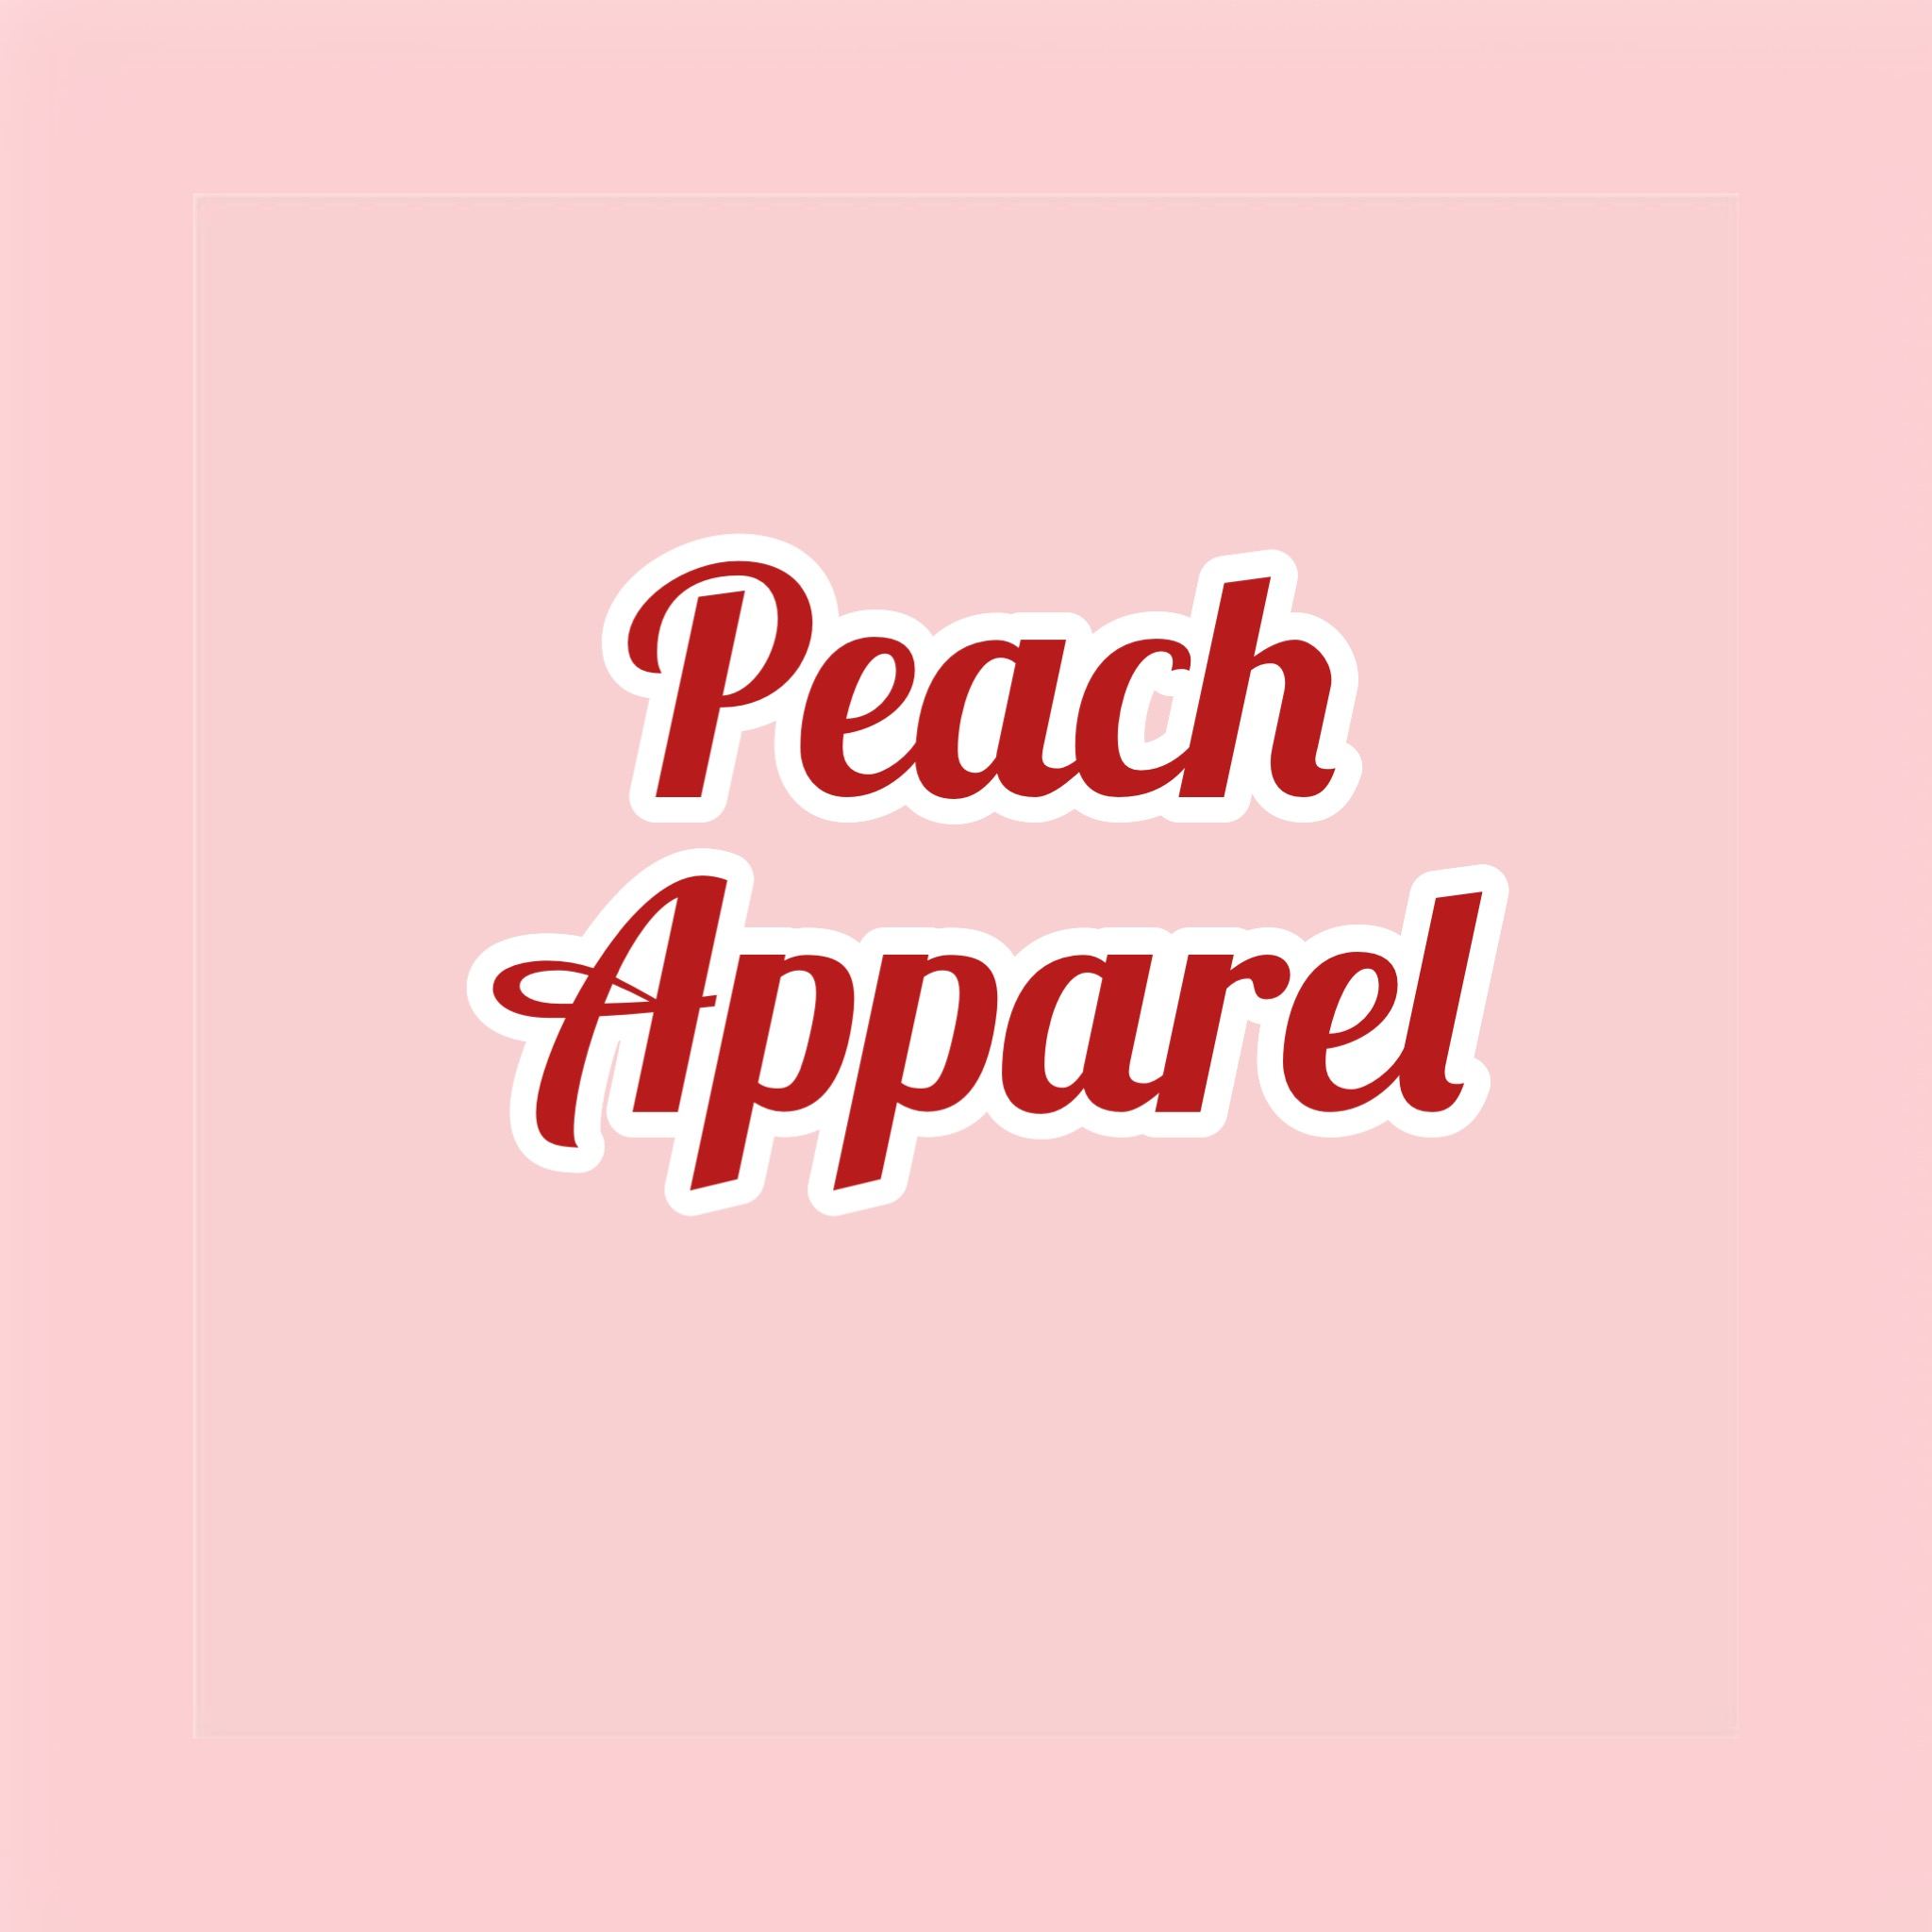 Peach apparel